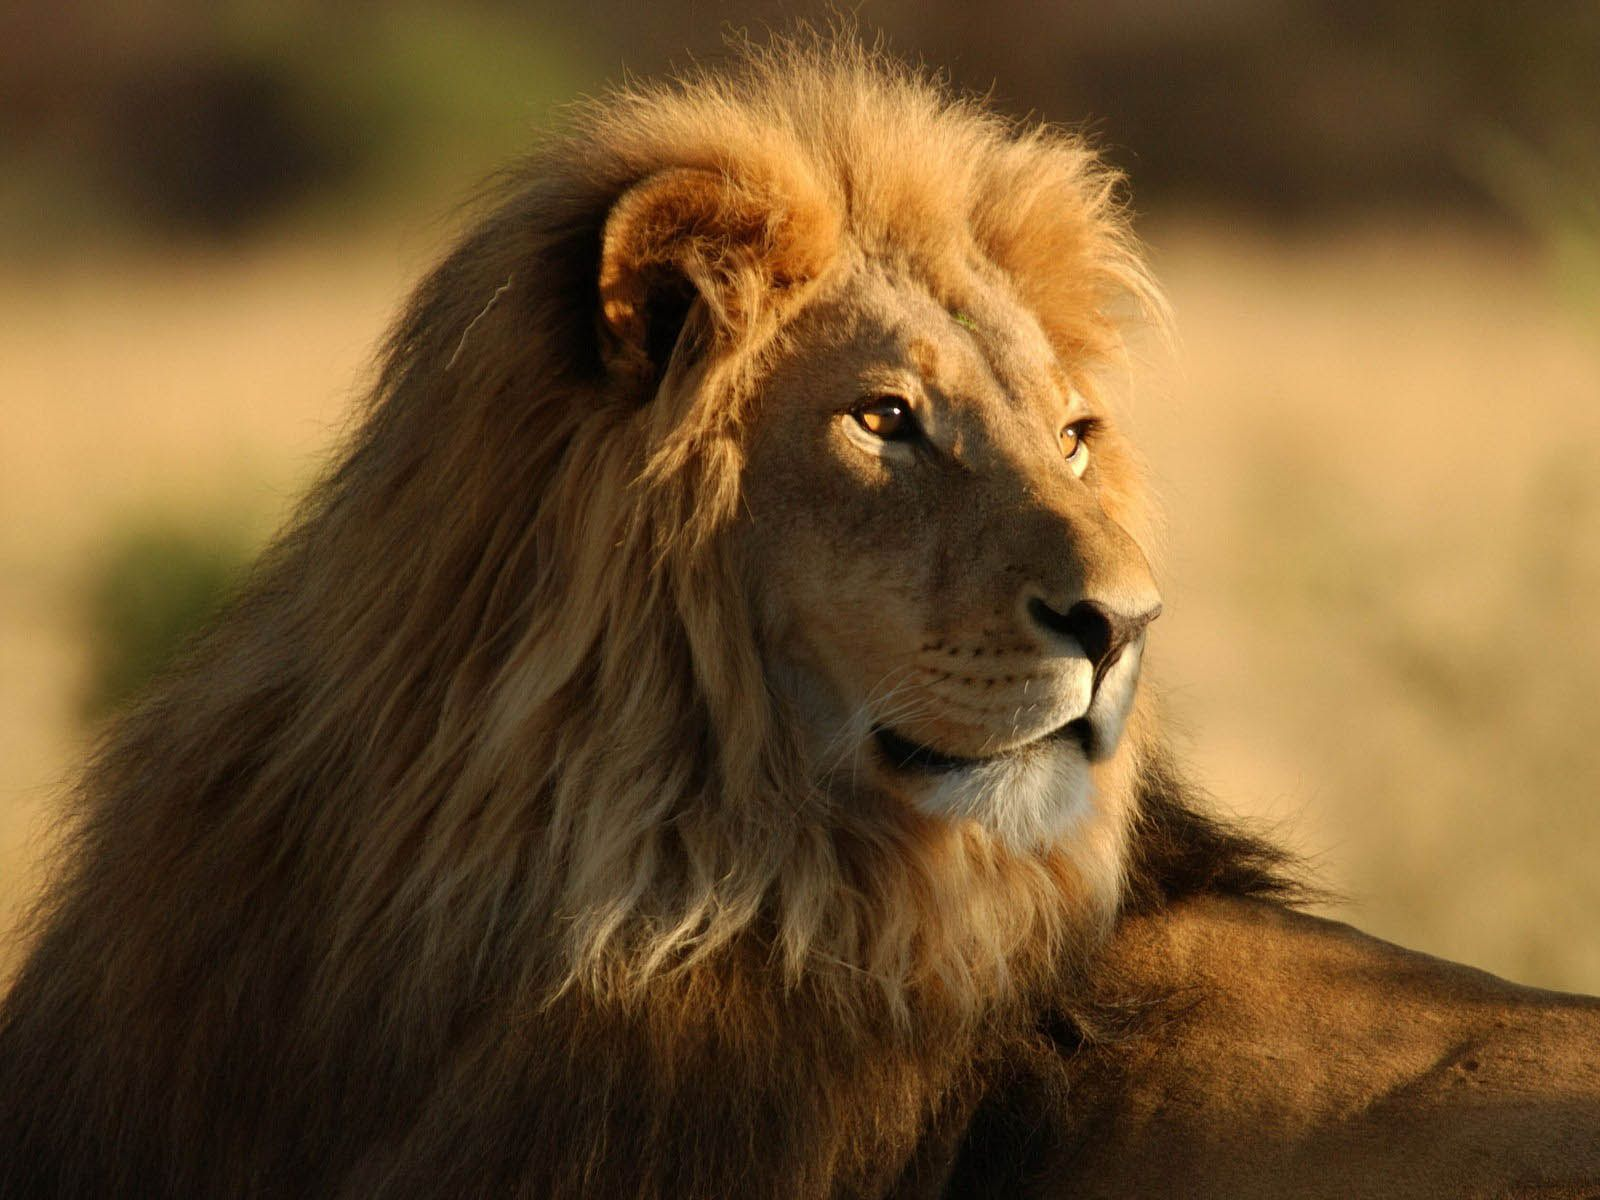 Male Lion Wallpapers 10 Jpg 1600 1200 Lion Hd Wallpaper Animals Lion Pictures